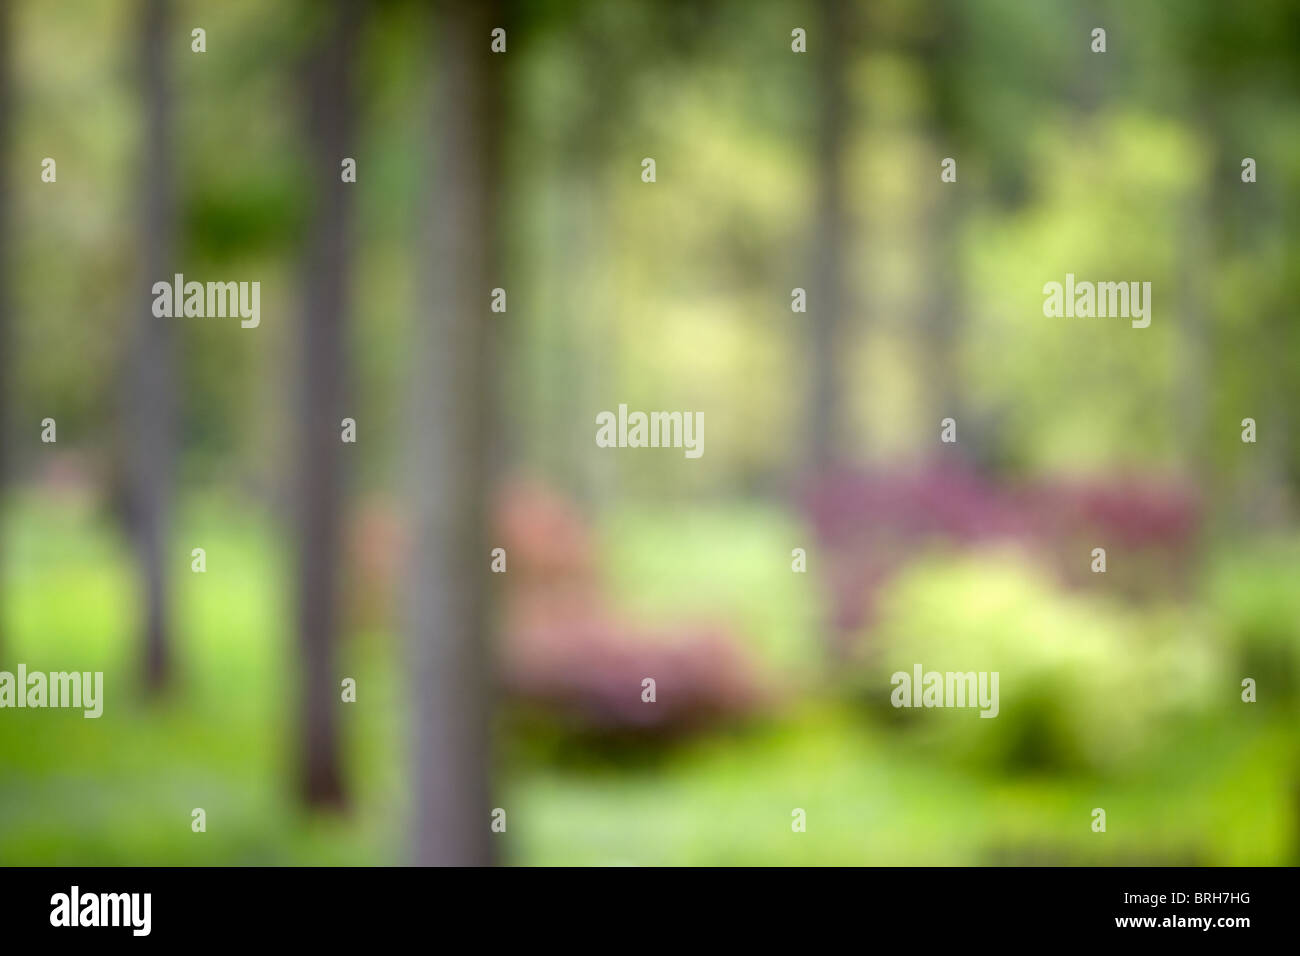 Impressionist image of the Acer Glade in spring at Westonbirt Arboretum, Gloucestershire - Stock Image